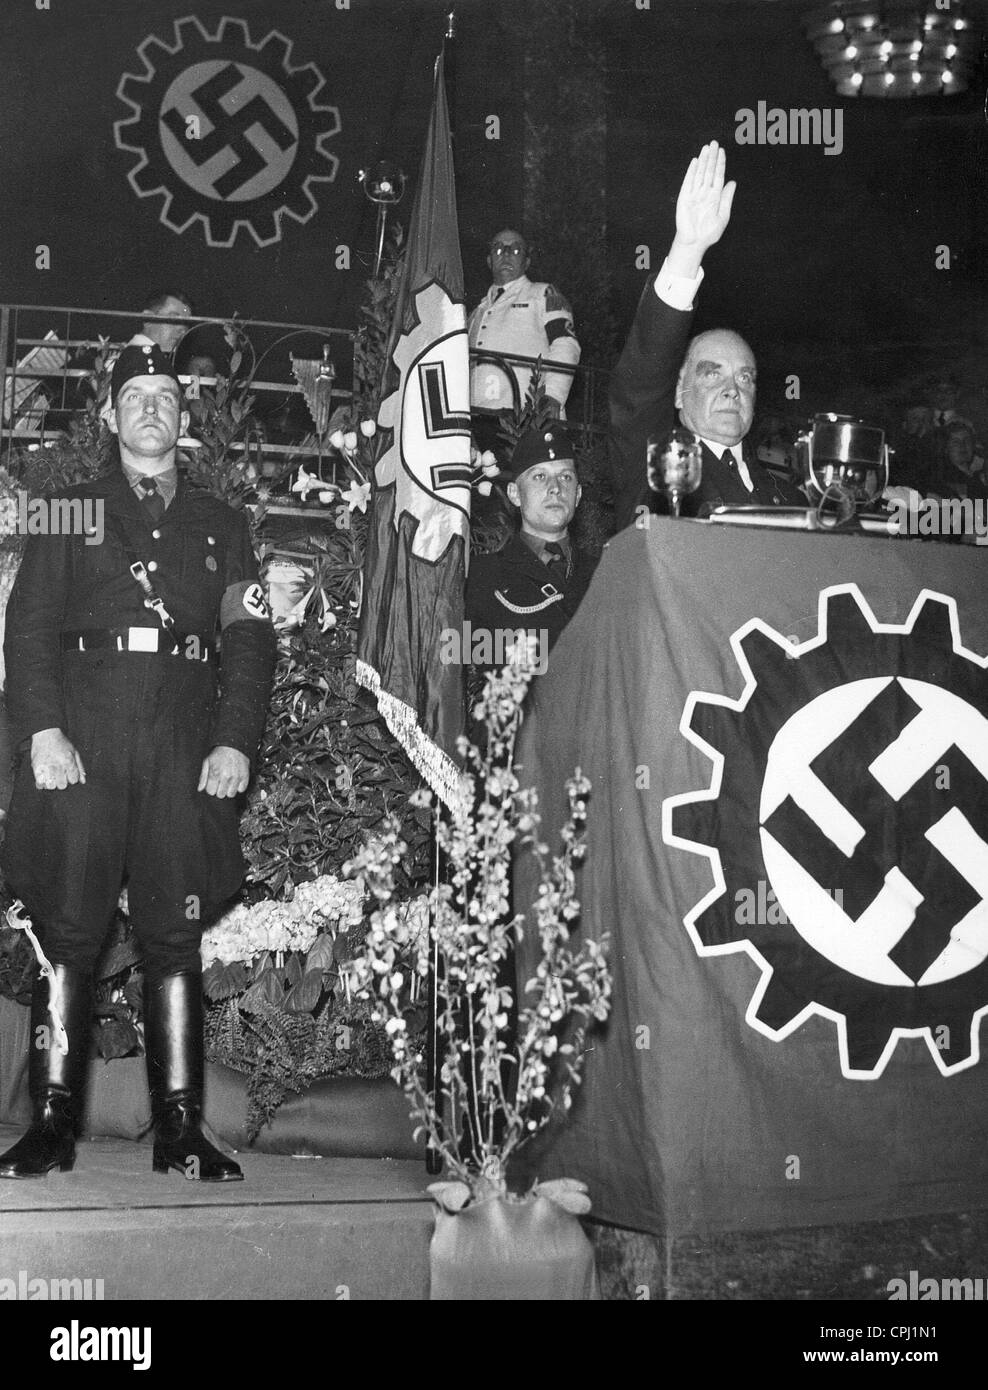 Celebration of the 1st May of the Berlin Schultheiss brewery, 1937 - Stock Image